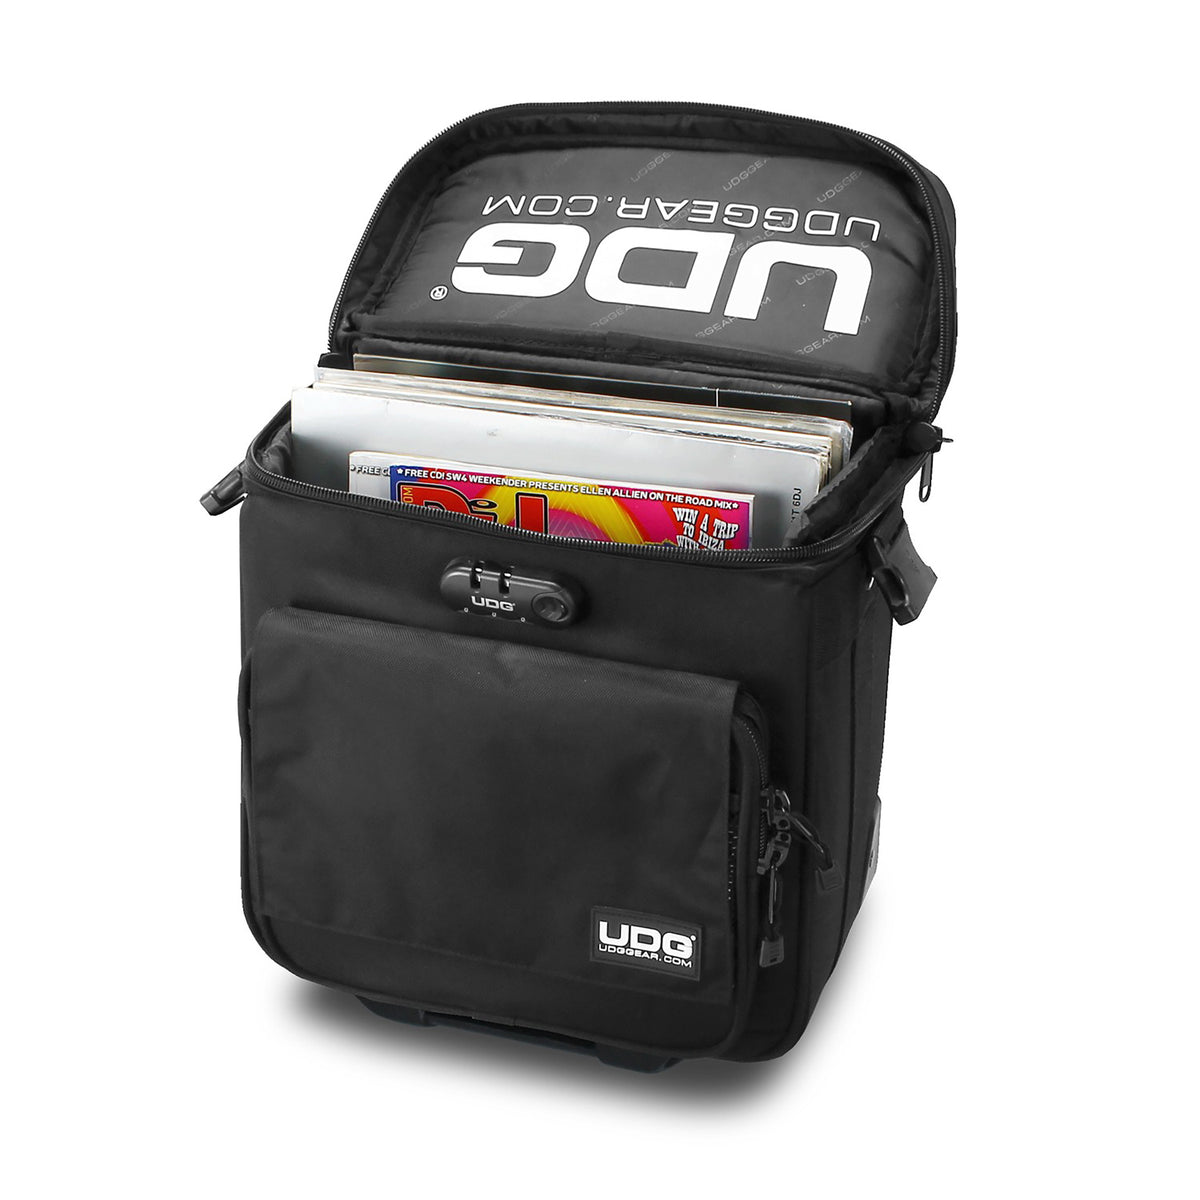 UDG: Trolley To Go Bag DJ Bag - Black (U9870BL)